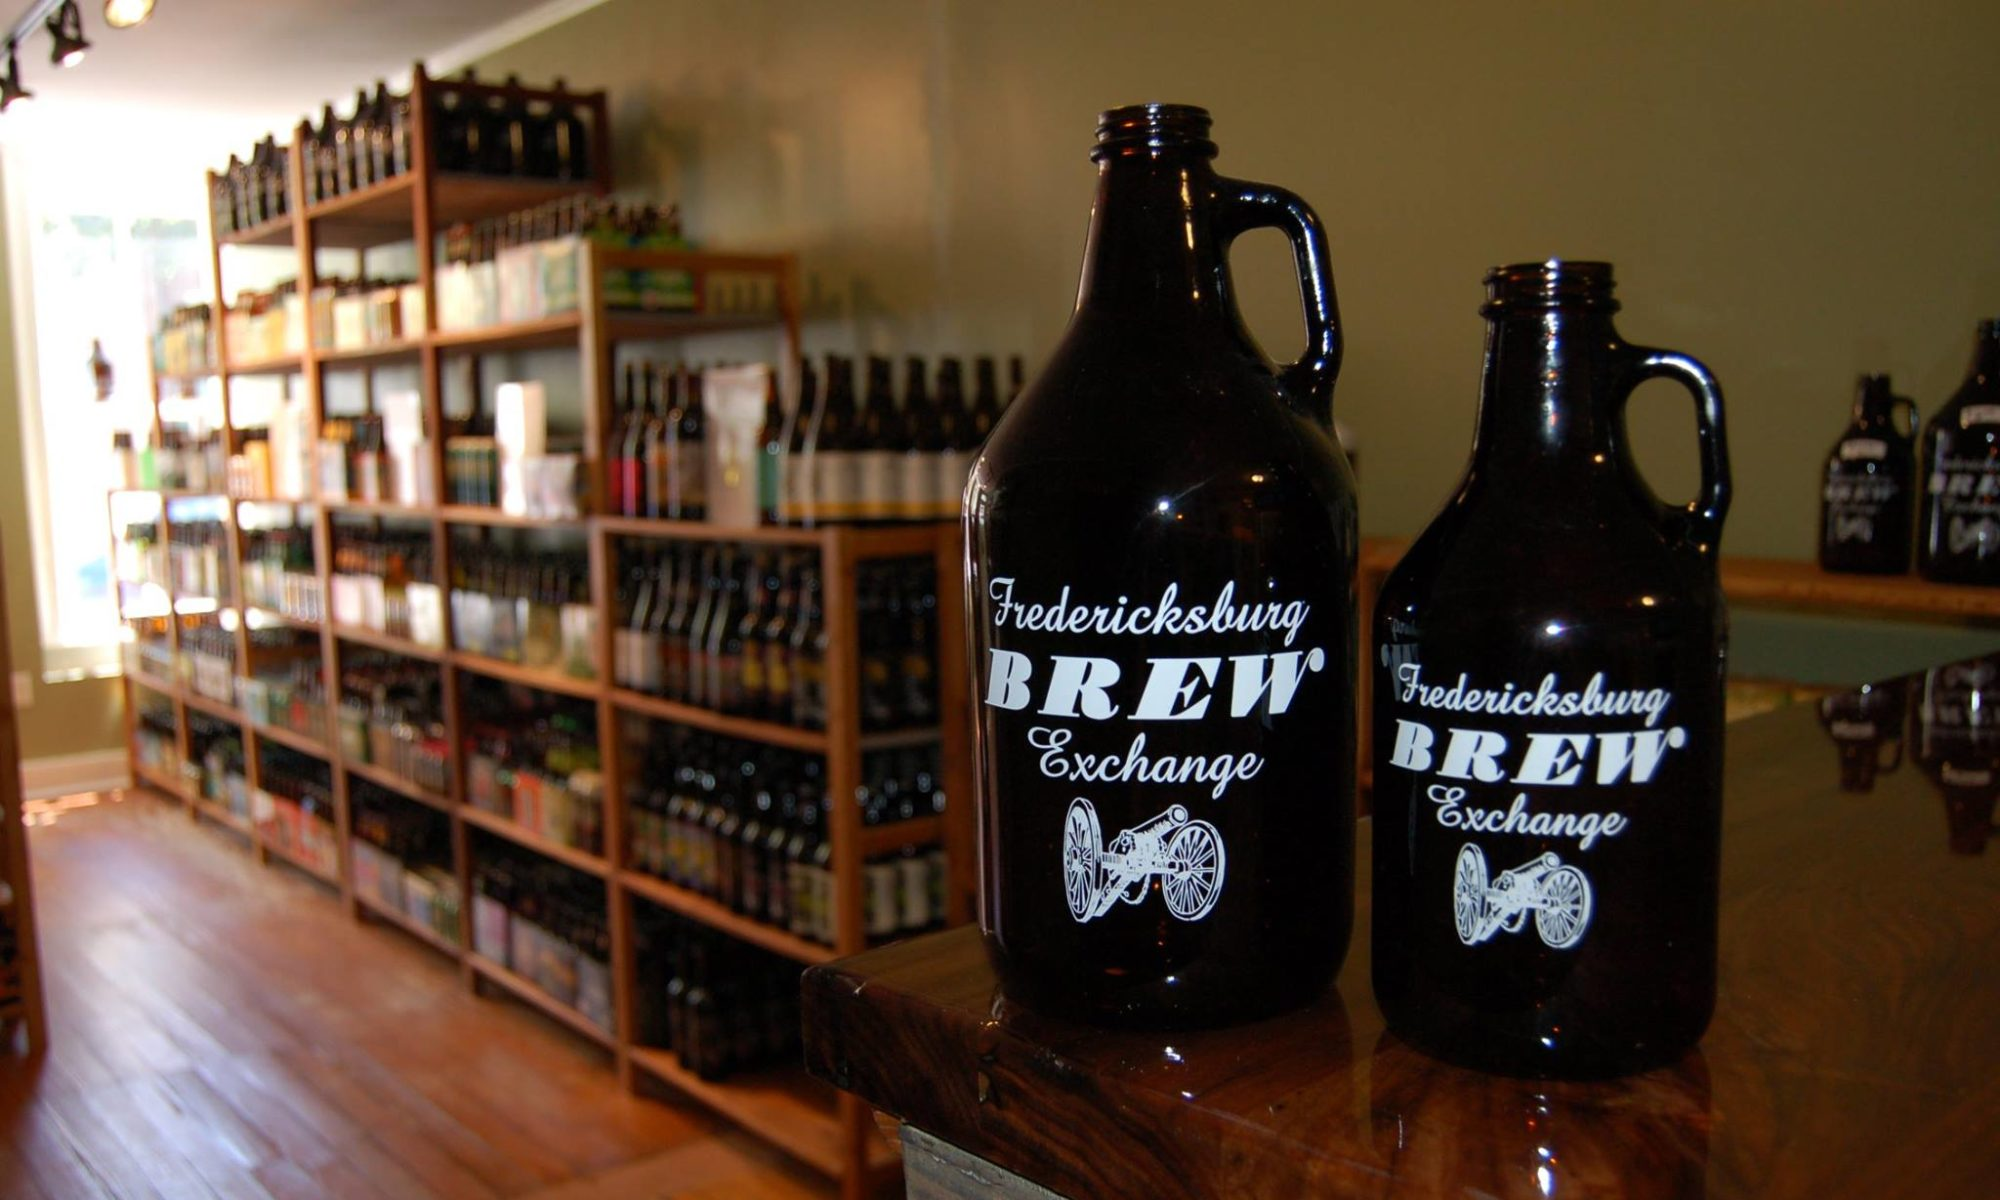 Fredericksburg Brew Exchange